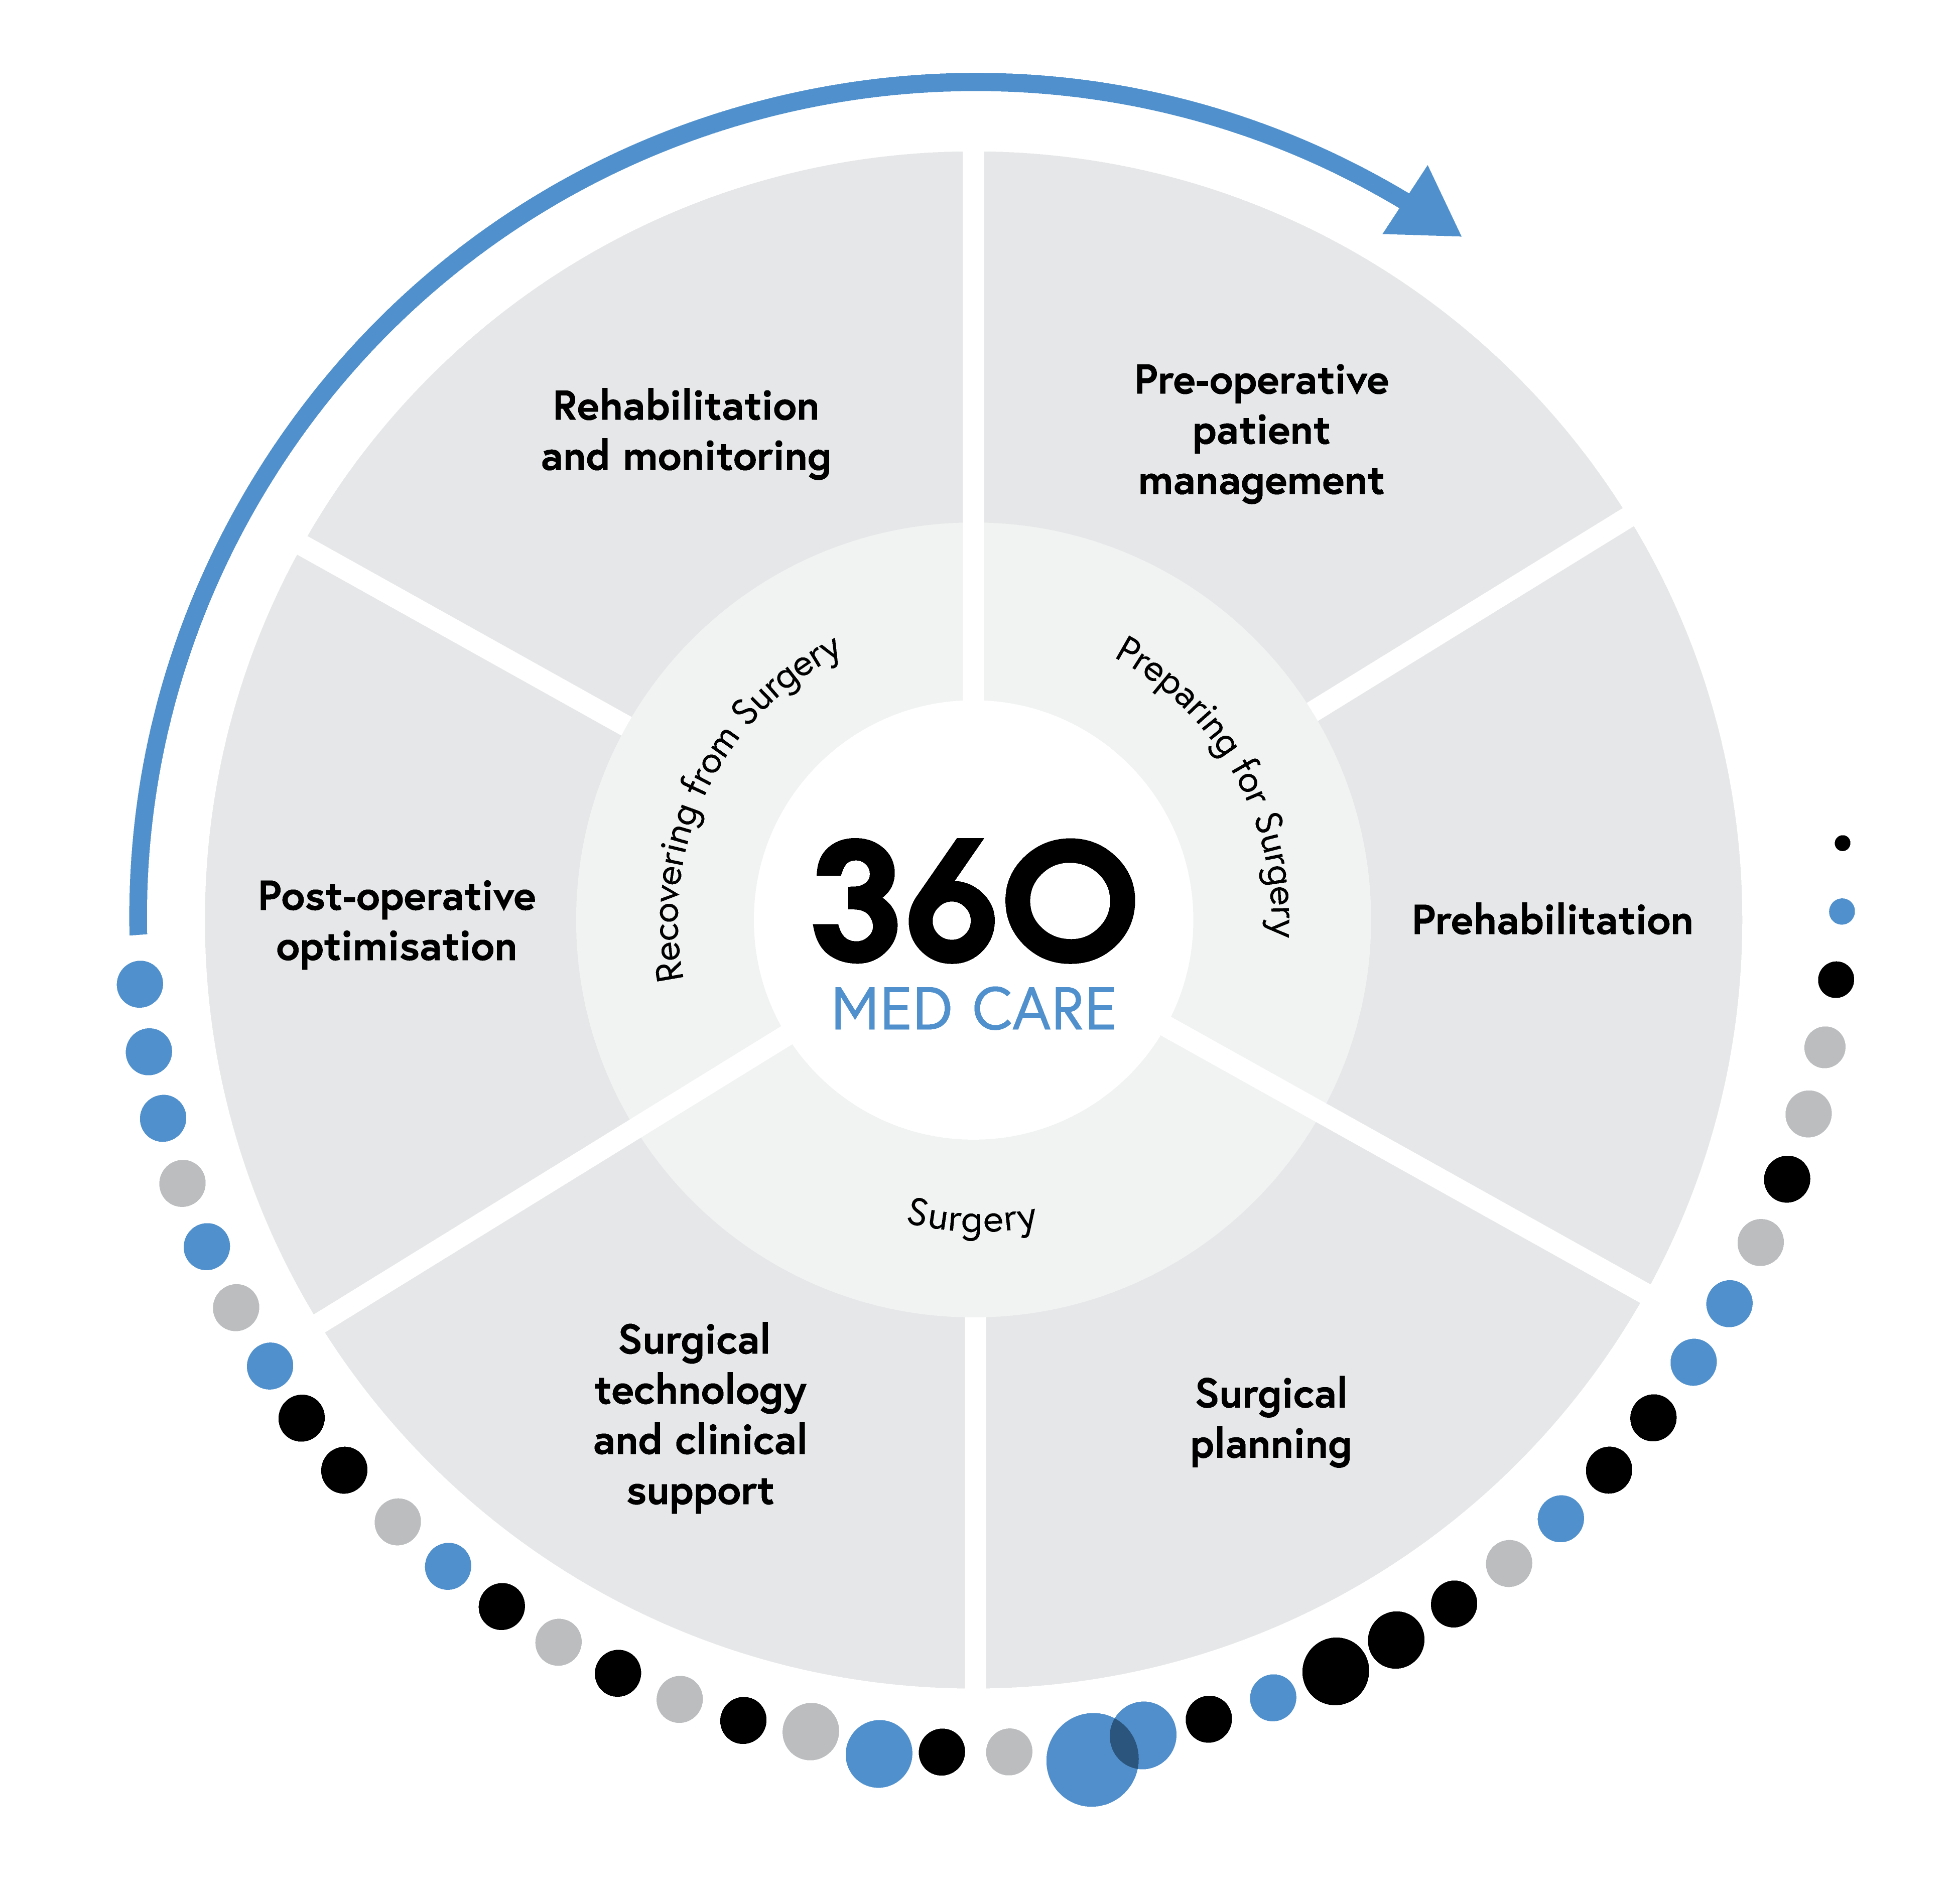 360 Episode of Care Wheel